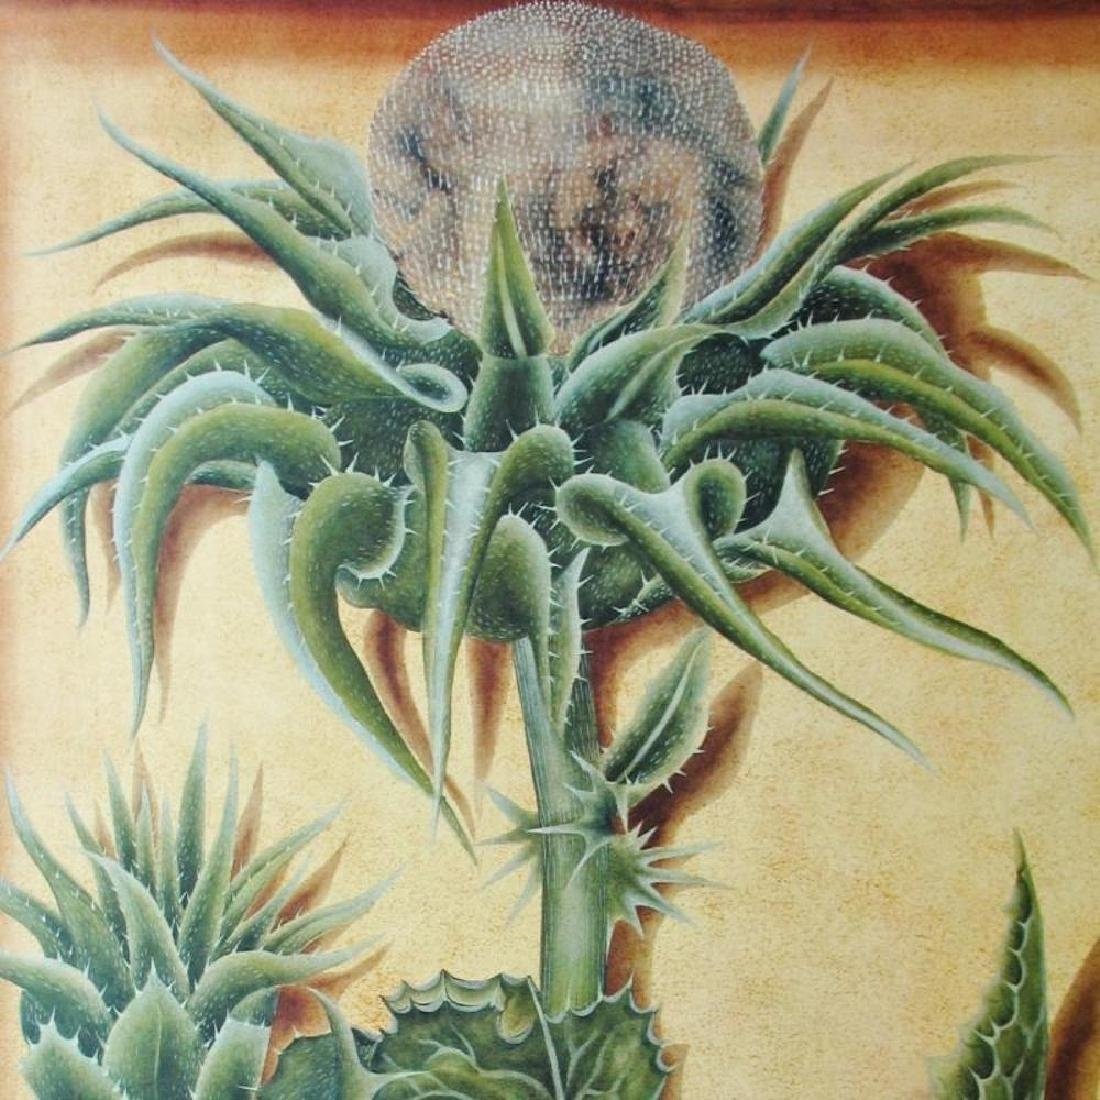 Cactus Sung 1998 Litho On Arches Printed In Canada - 3